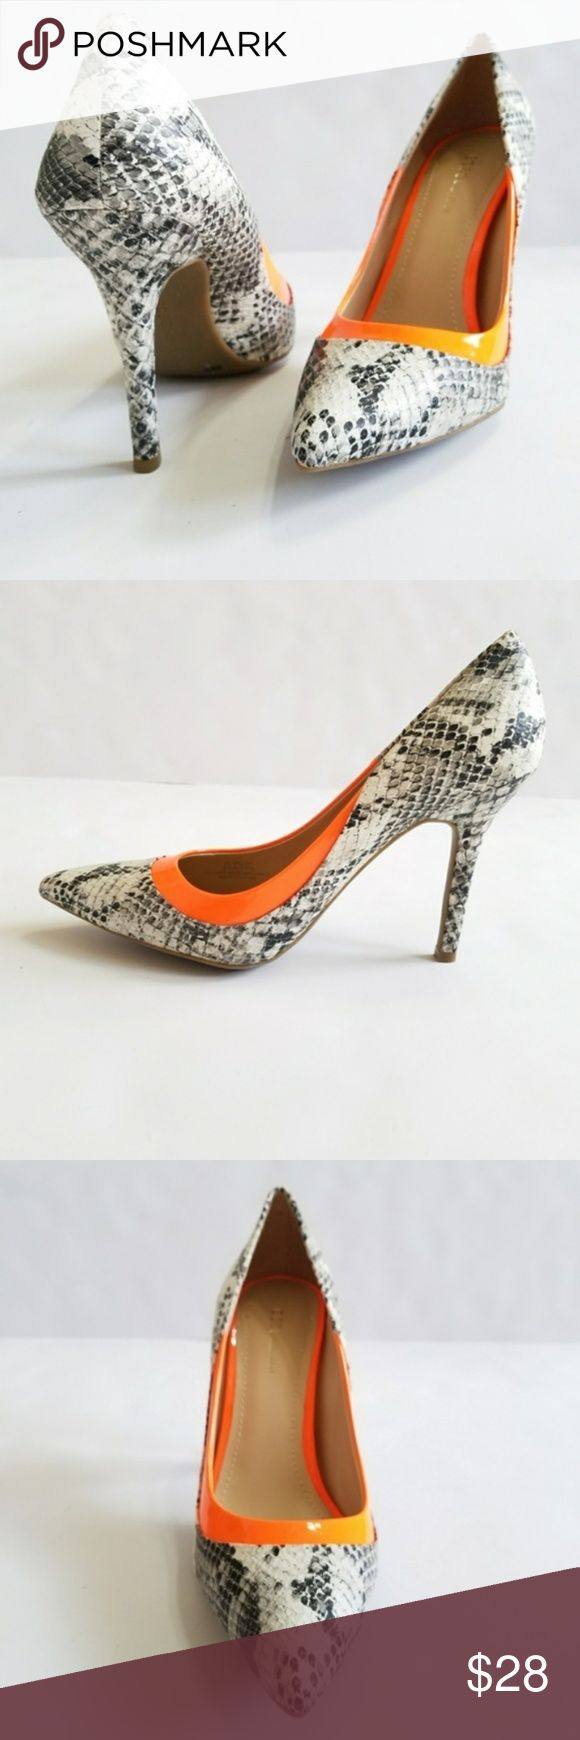 BCGGeneration Snakeskin & Neon Pumps Heels BRAND NEW! BCGGeneration Snakeskin & Neon Stripe Pumps size 6 1/2  Be prepared to get all the attention with these snakeskin print pointy toe pumps with an unexpected and edgy orange stripe. Style: Delliah.  4 inches heel Pre-owned. Excellent condition. Never worn. BCBGeneration Shoes Heels